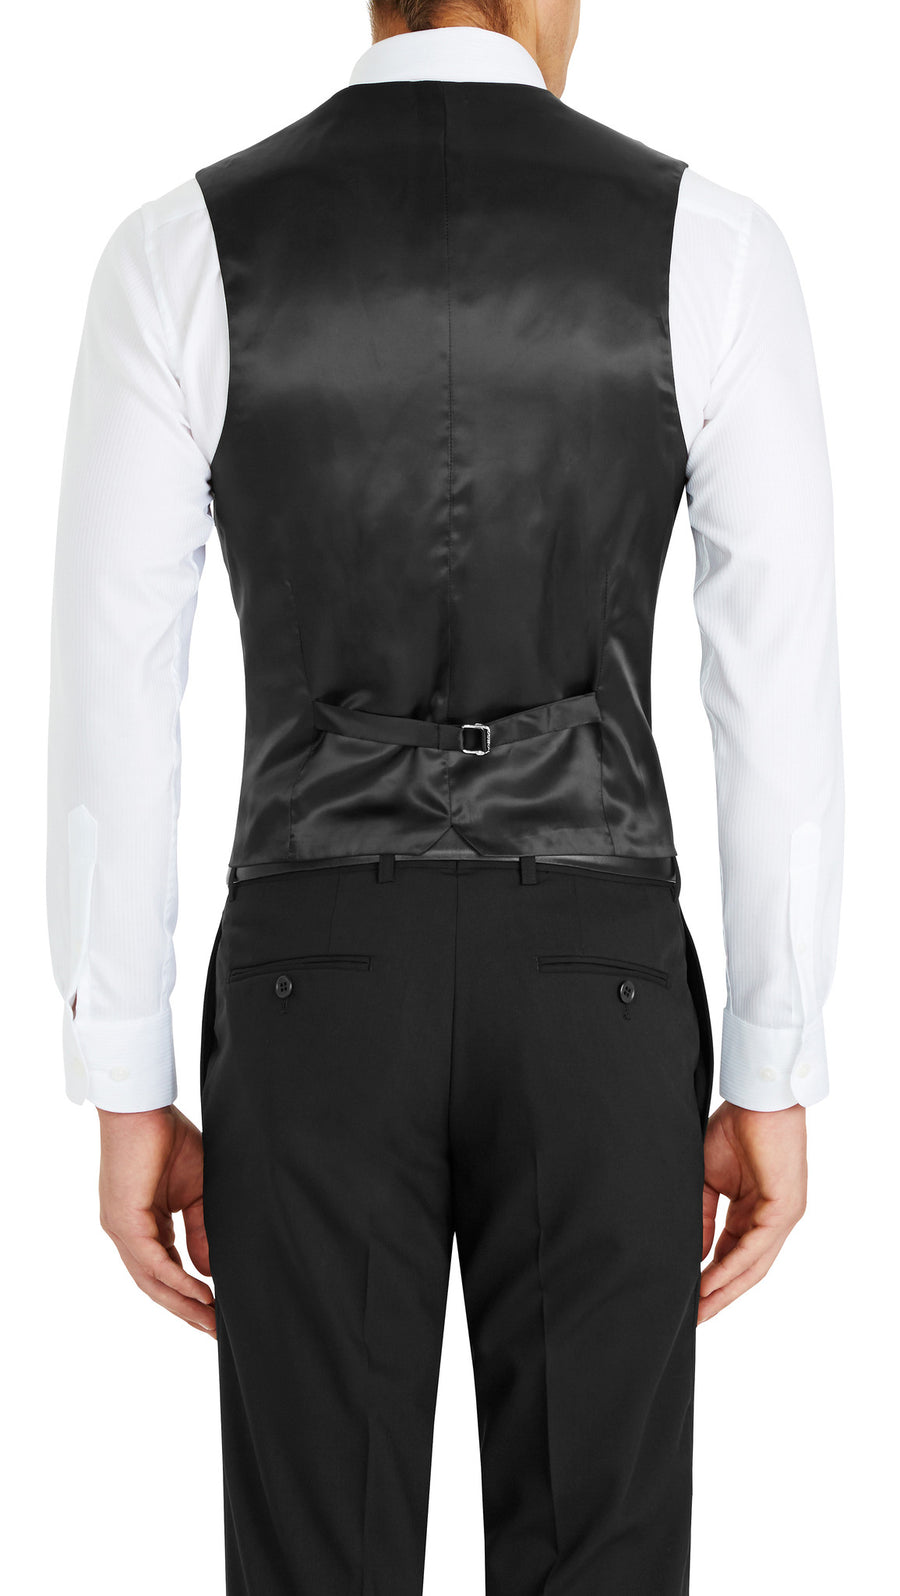 Trench Five Button Vest in Black - Ron Bennett Menswear  - 1